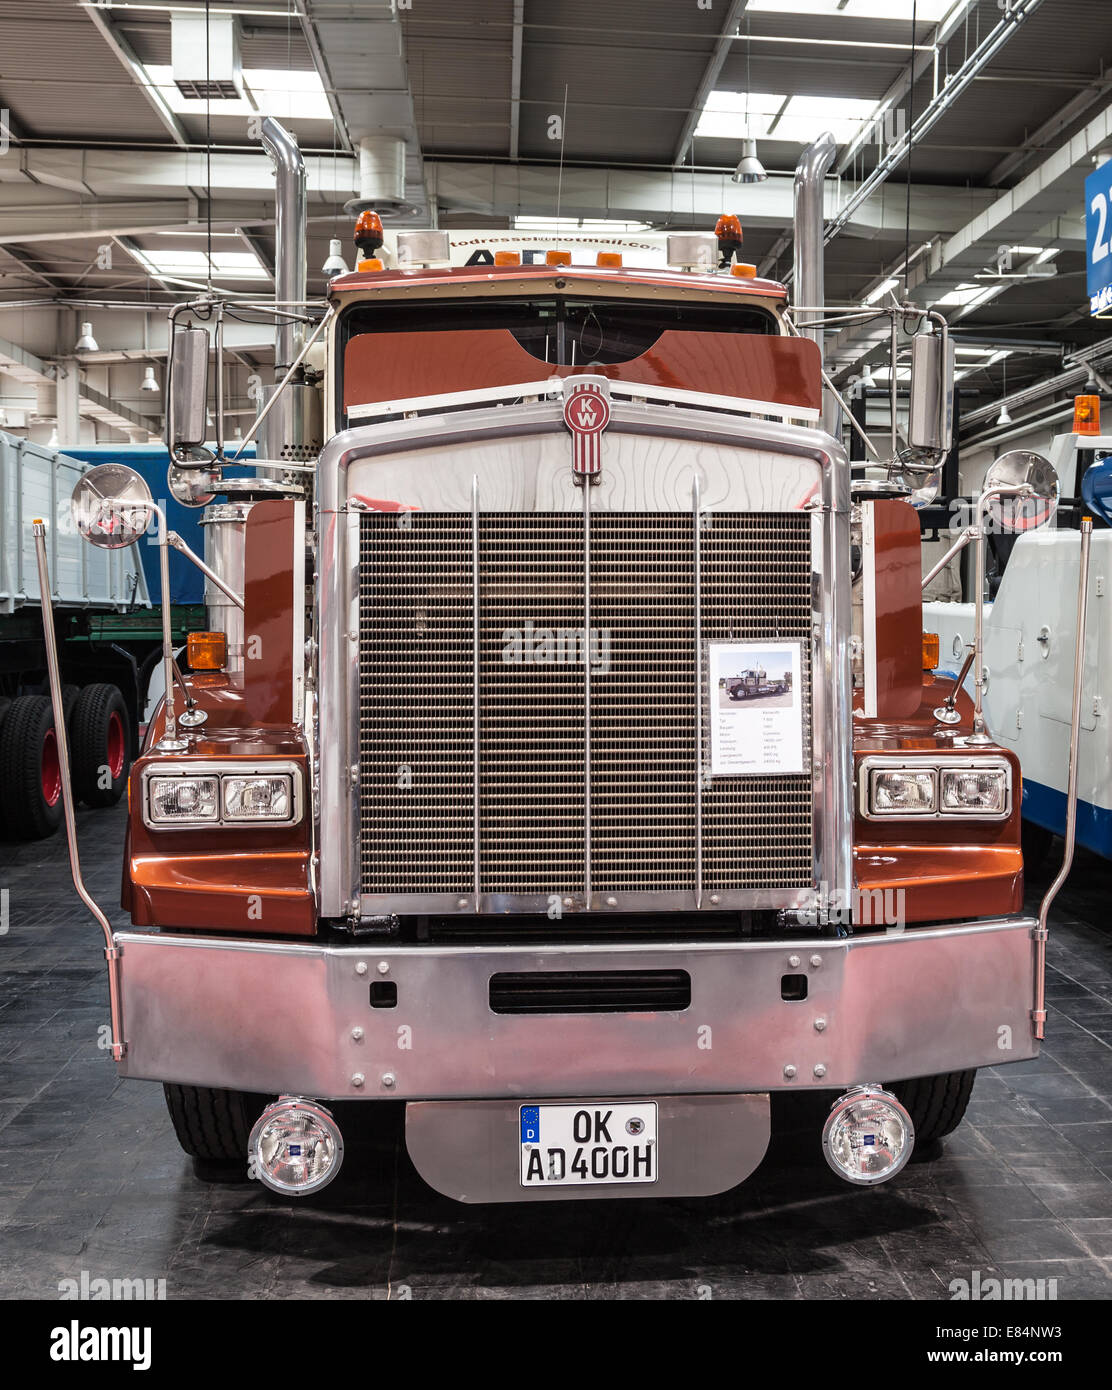 Historic Kenworth truck T 800 from 1983 at the 65th IAA Commercial Vehicles Fair 2014 in Hannover, Germany - Stock Image